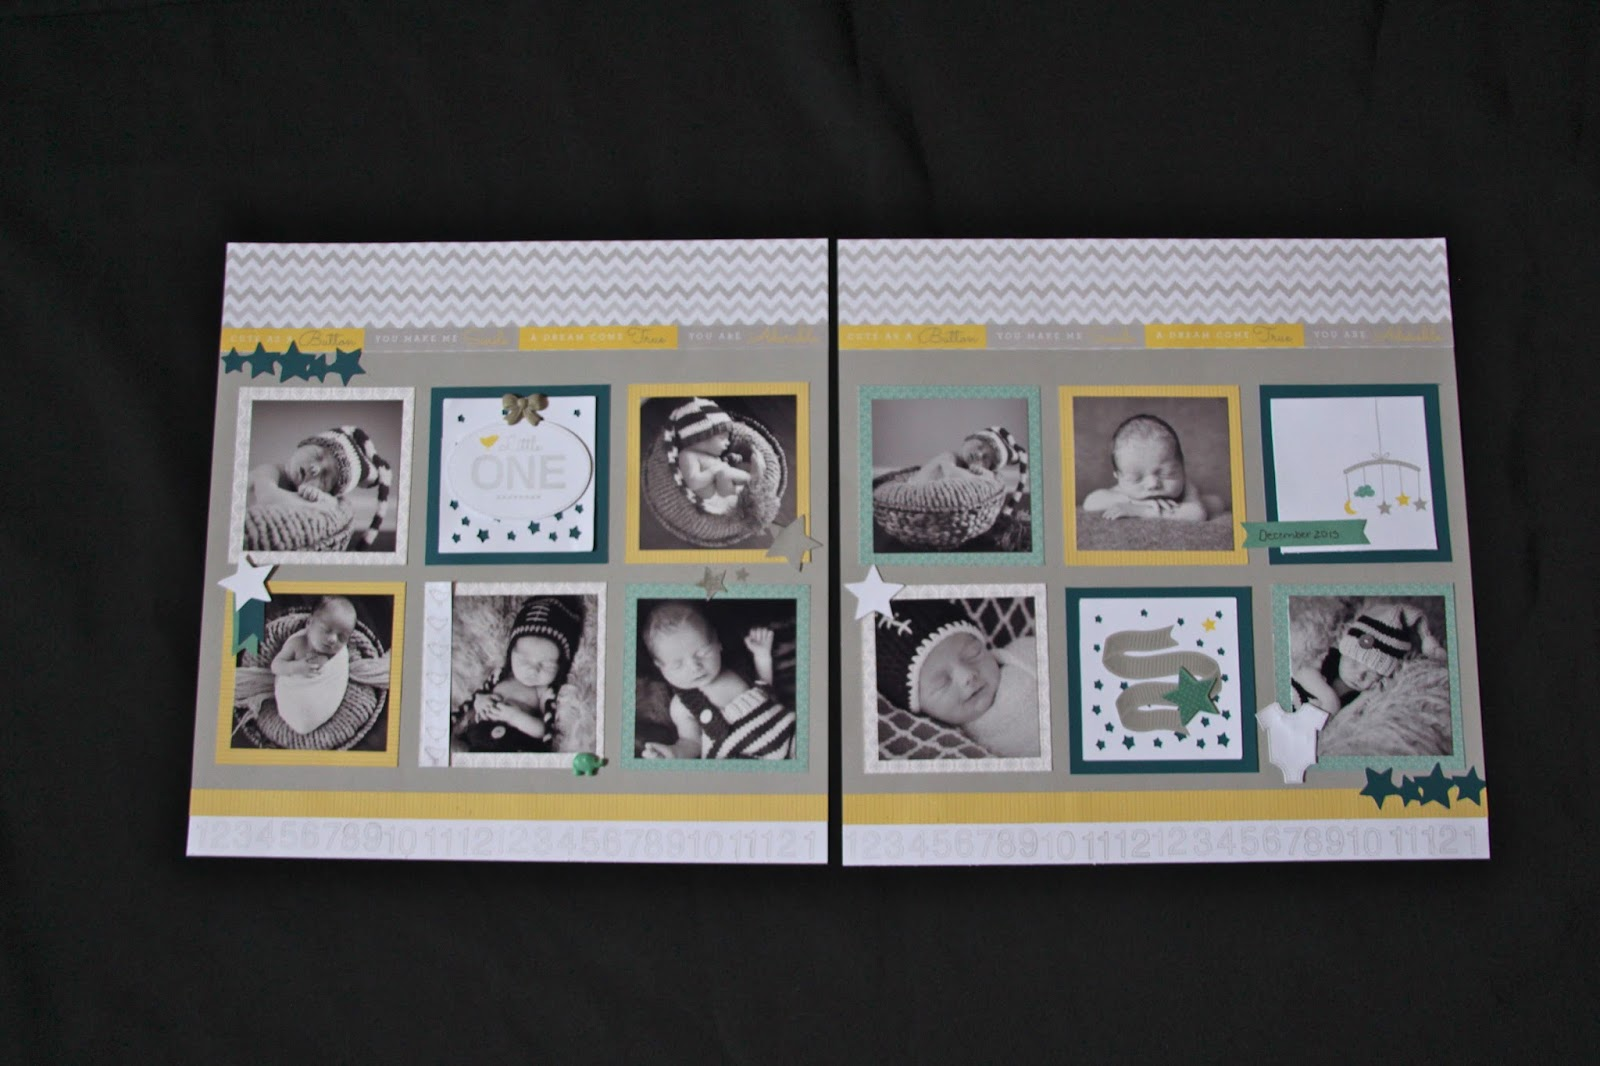 Scrapbook ideas list - The Shopping List Is Below As Well As The Add On Product List You Must Purchase The Basic Kit To Participate All Other Products Are Optional